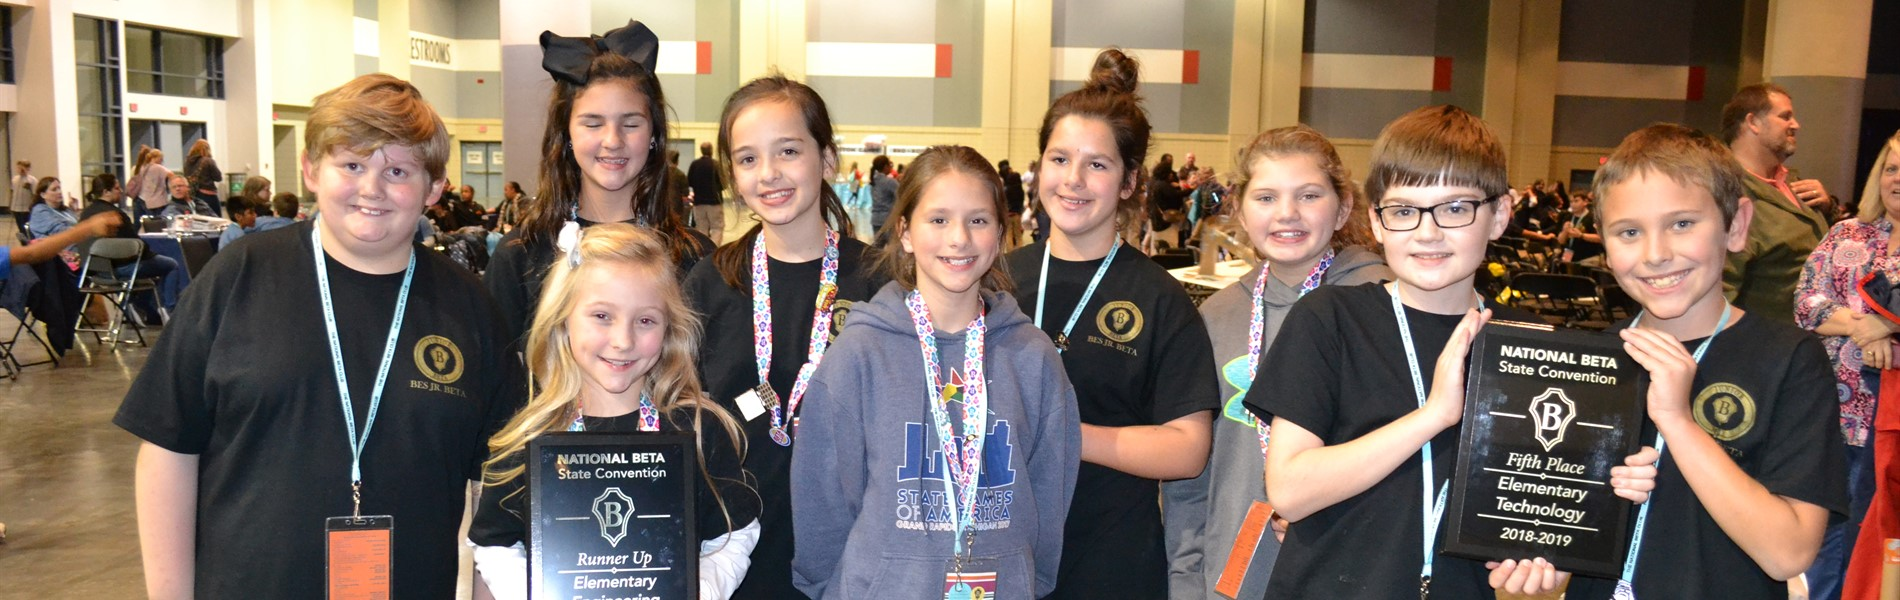 Beta Places at State Convention